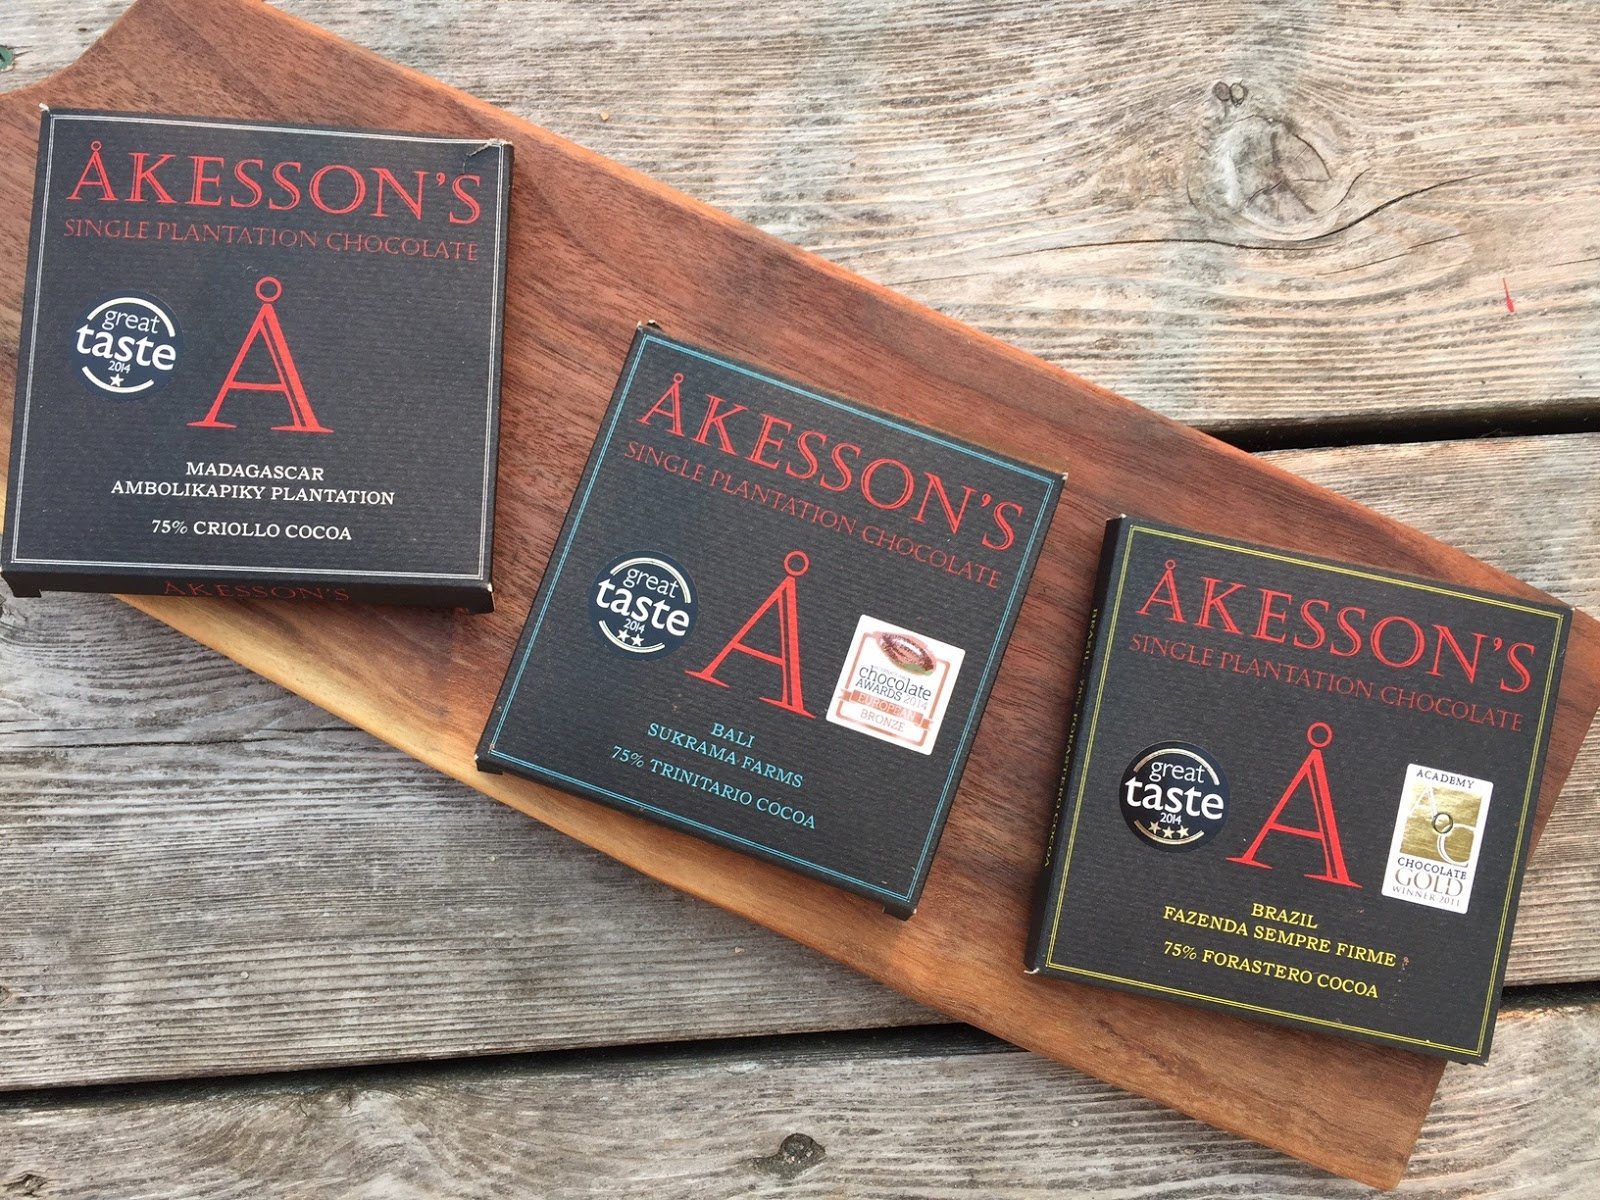 Akessons-Single-Plantation-Chocolate-3